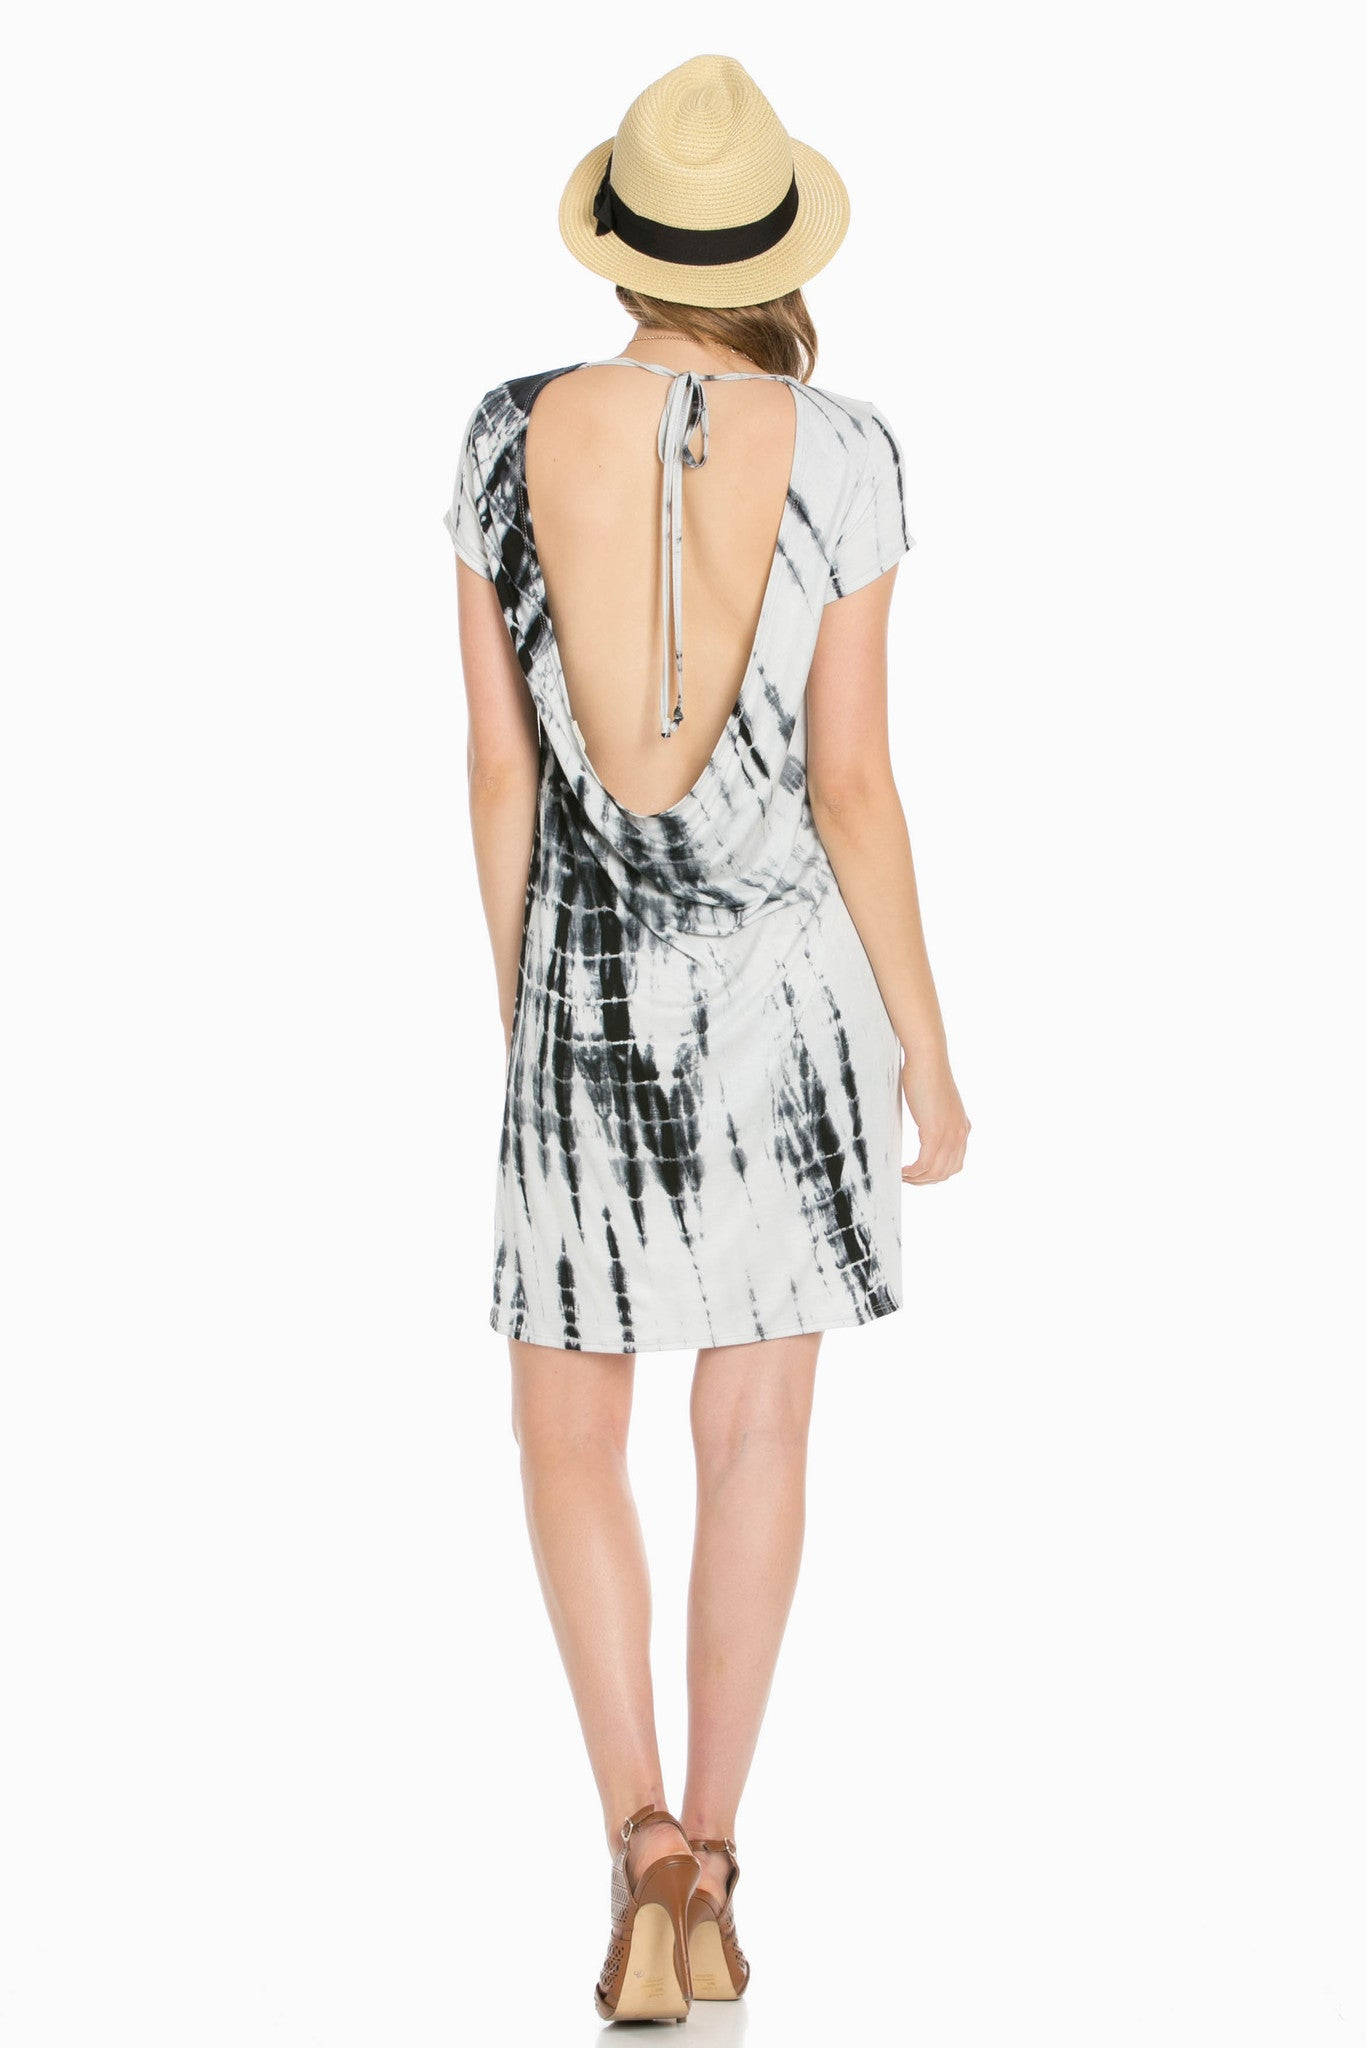 Open Back Black Tie Dye Dress - Dresses - My Yuccie - 4